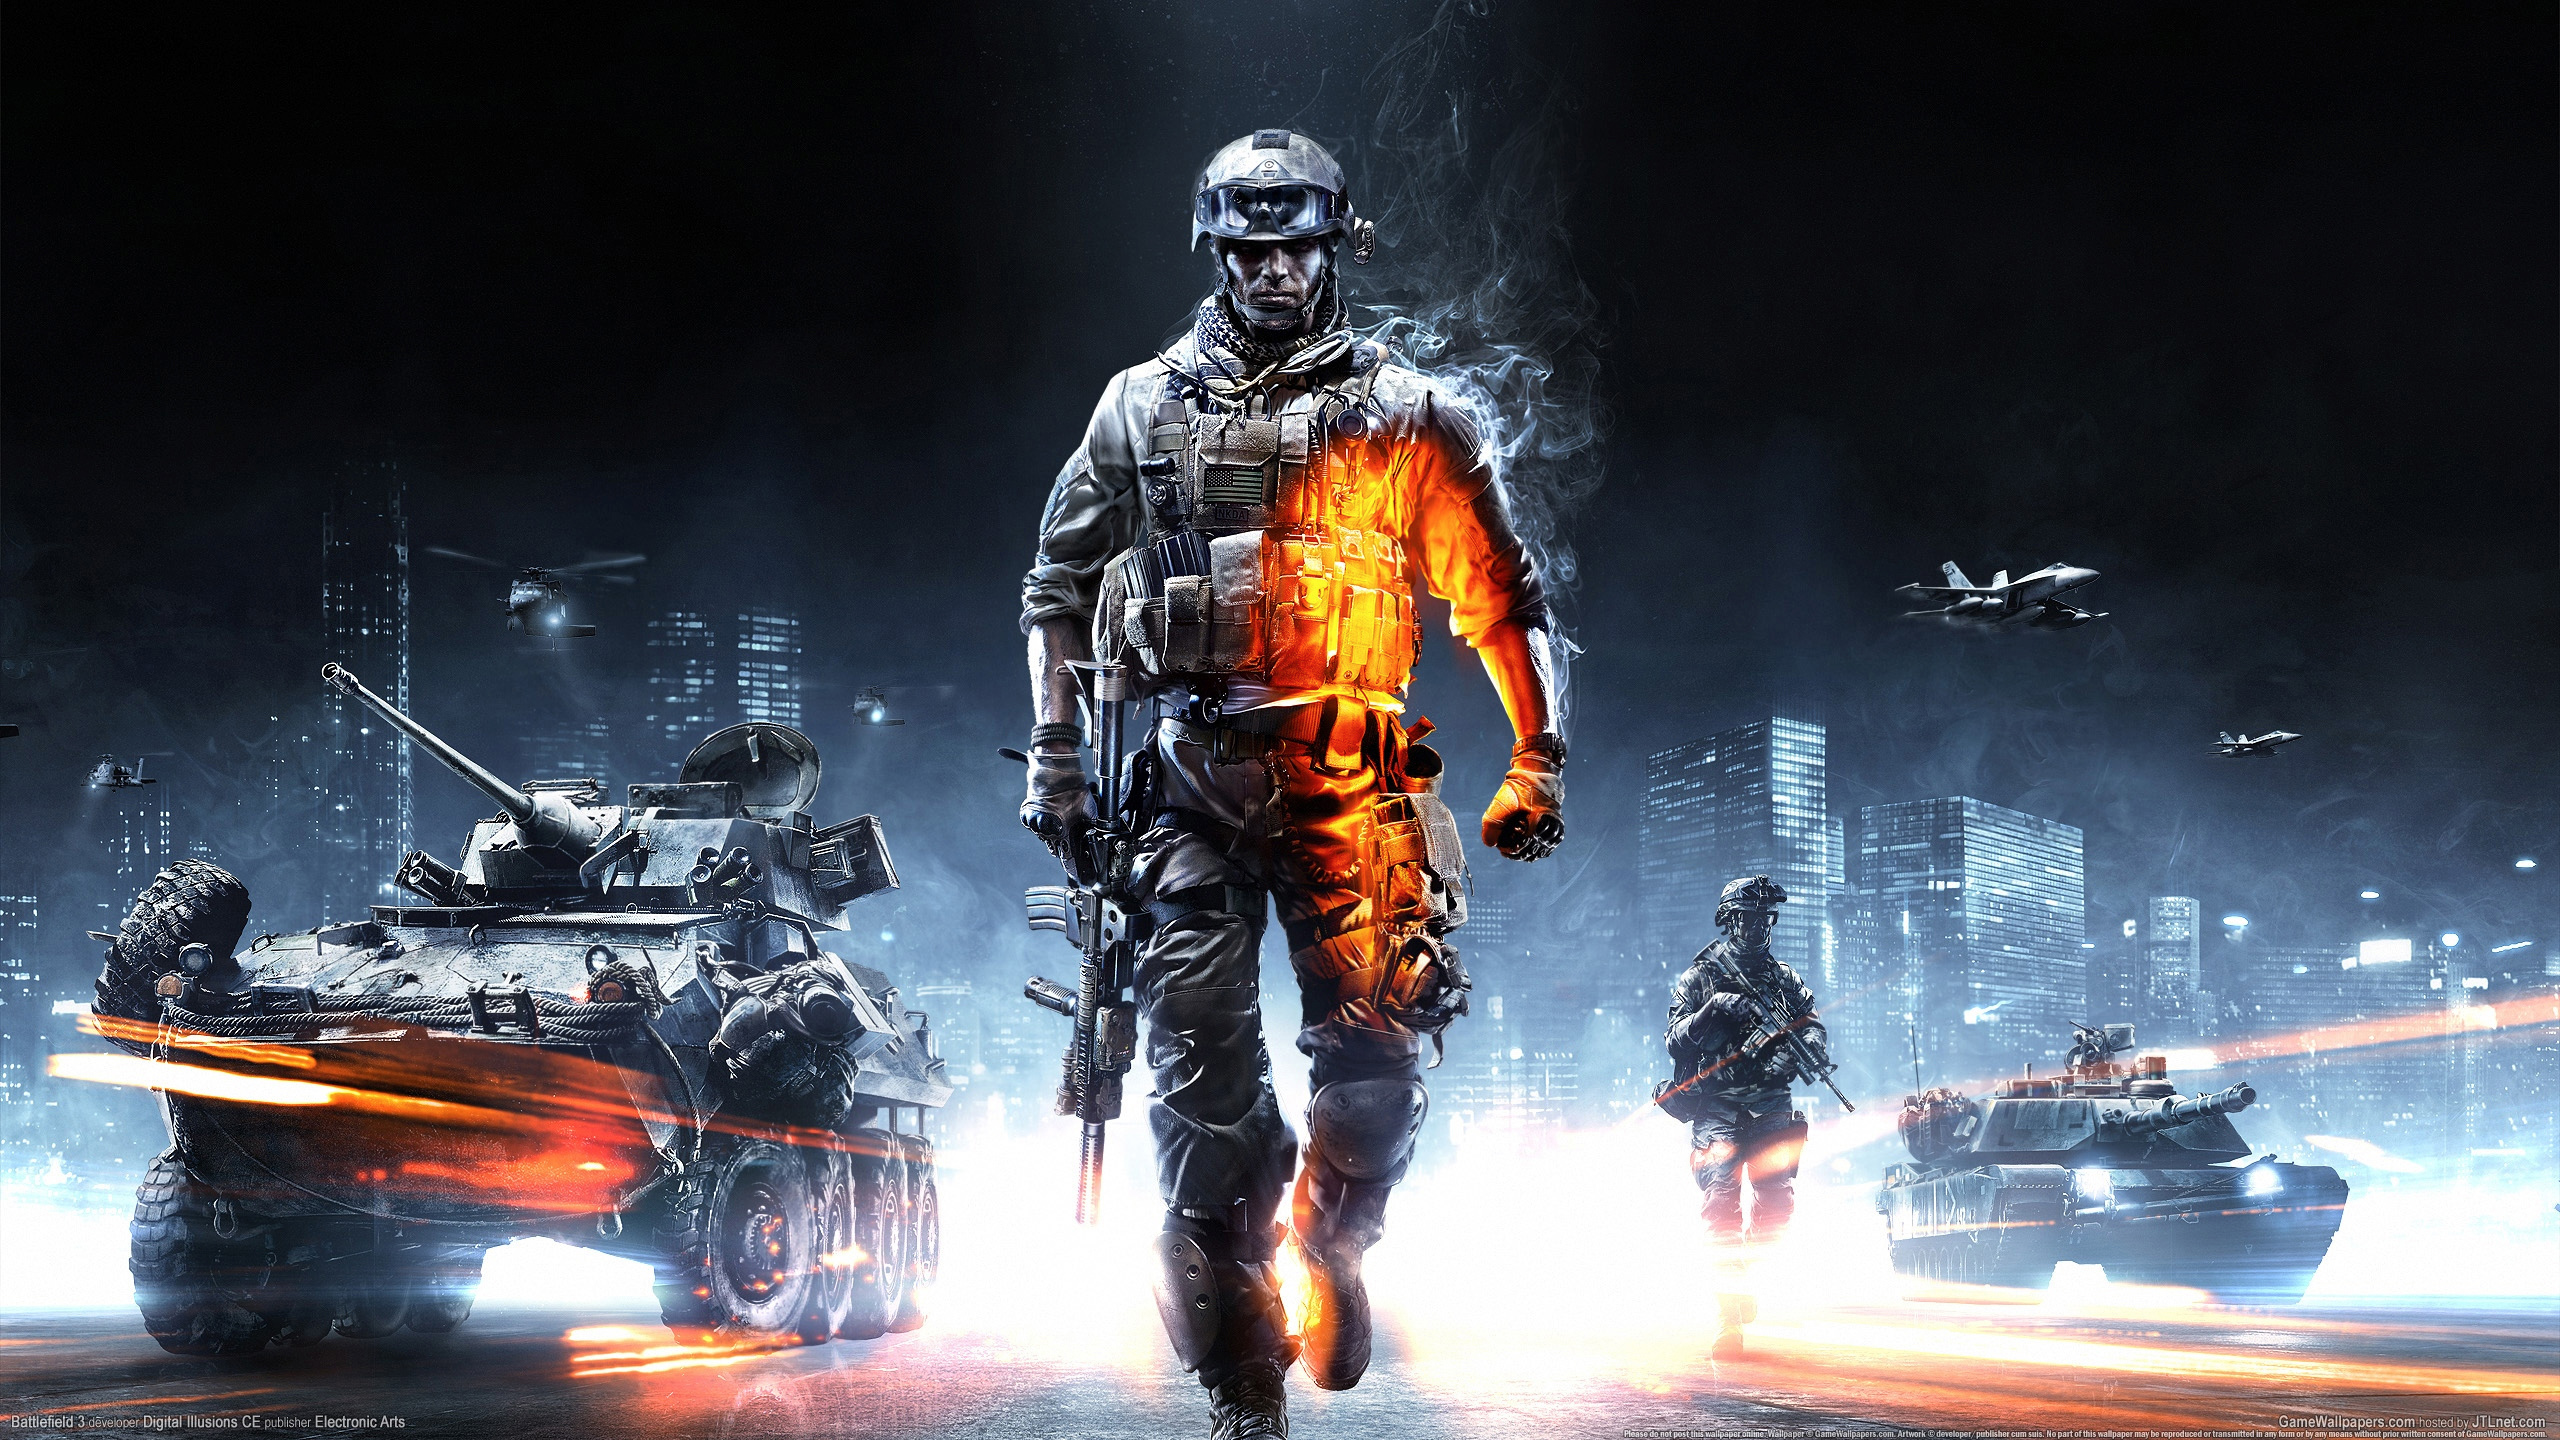 Download Wallpaper 1280x1280 Battlefield 4 Game Ea: Battlefield 3 HD Wallpaper